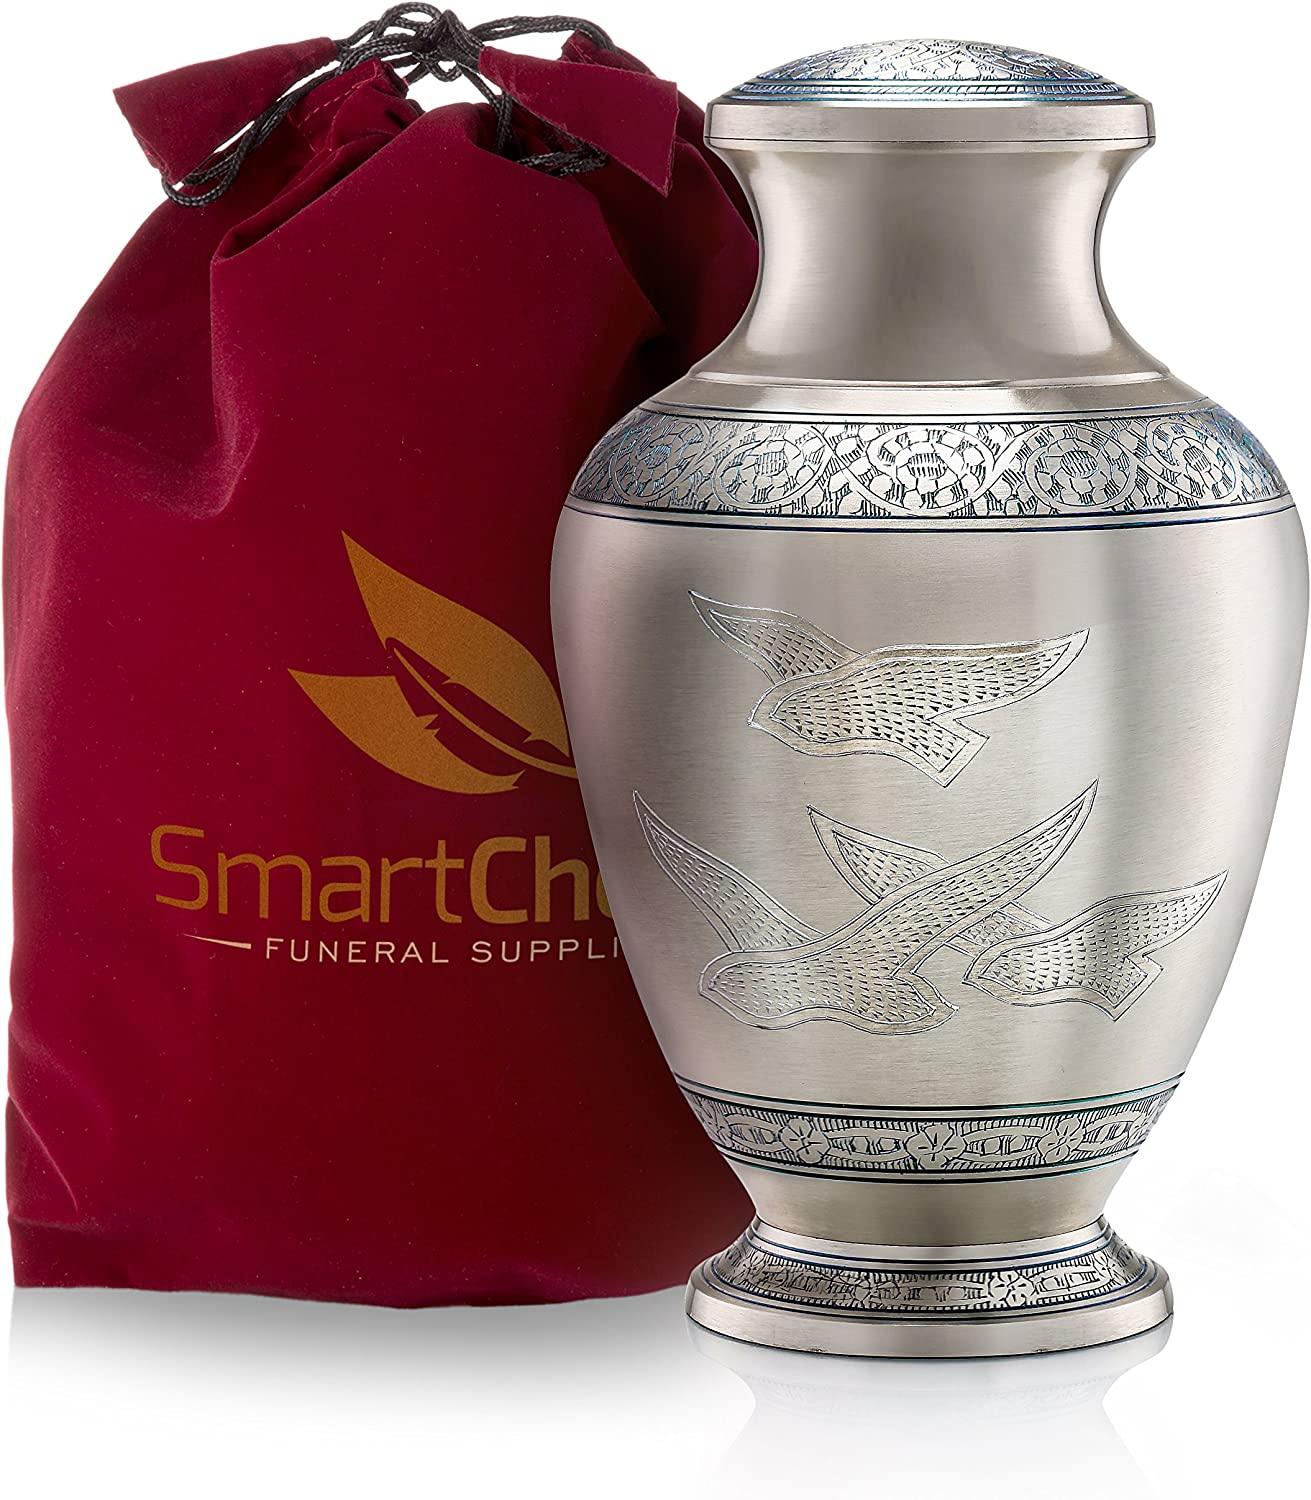 SmartChoice Wings of Freedom Cremation Urn for Human Ashes - Beautiful Funeral Urn Adult Urn for Ashes Handcrafted Urn (Adult)